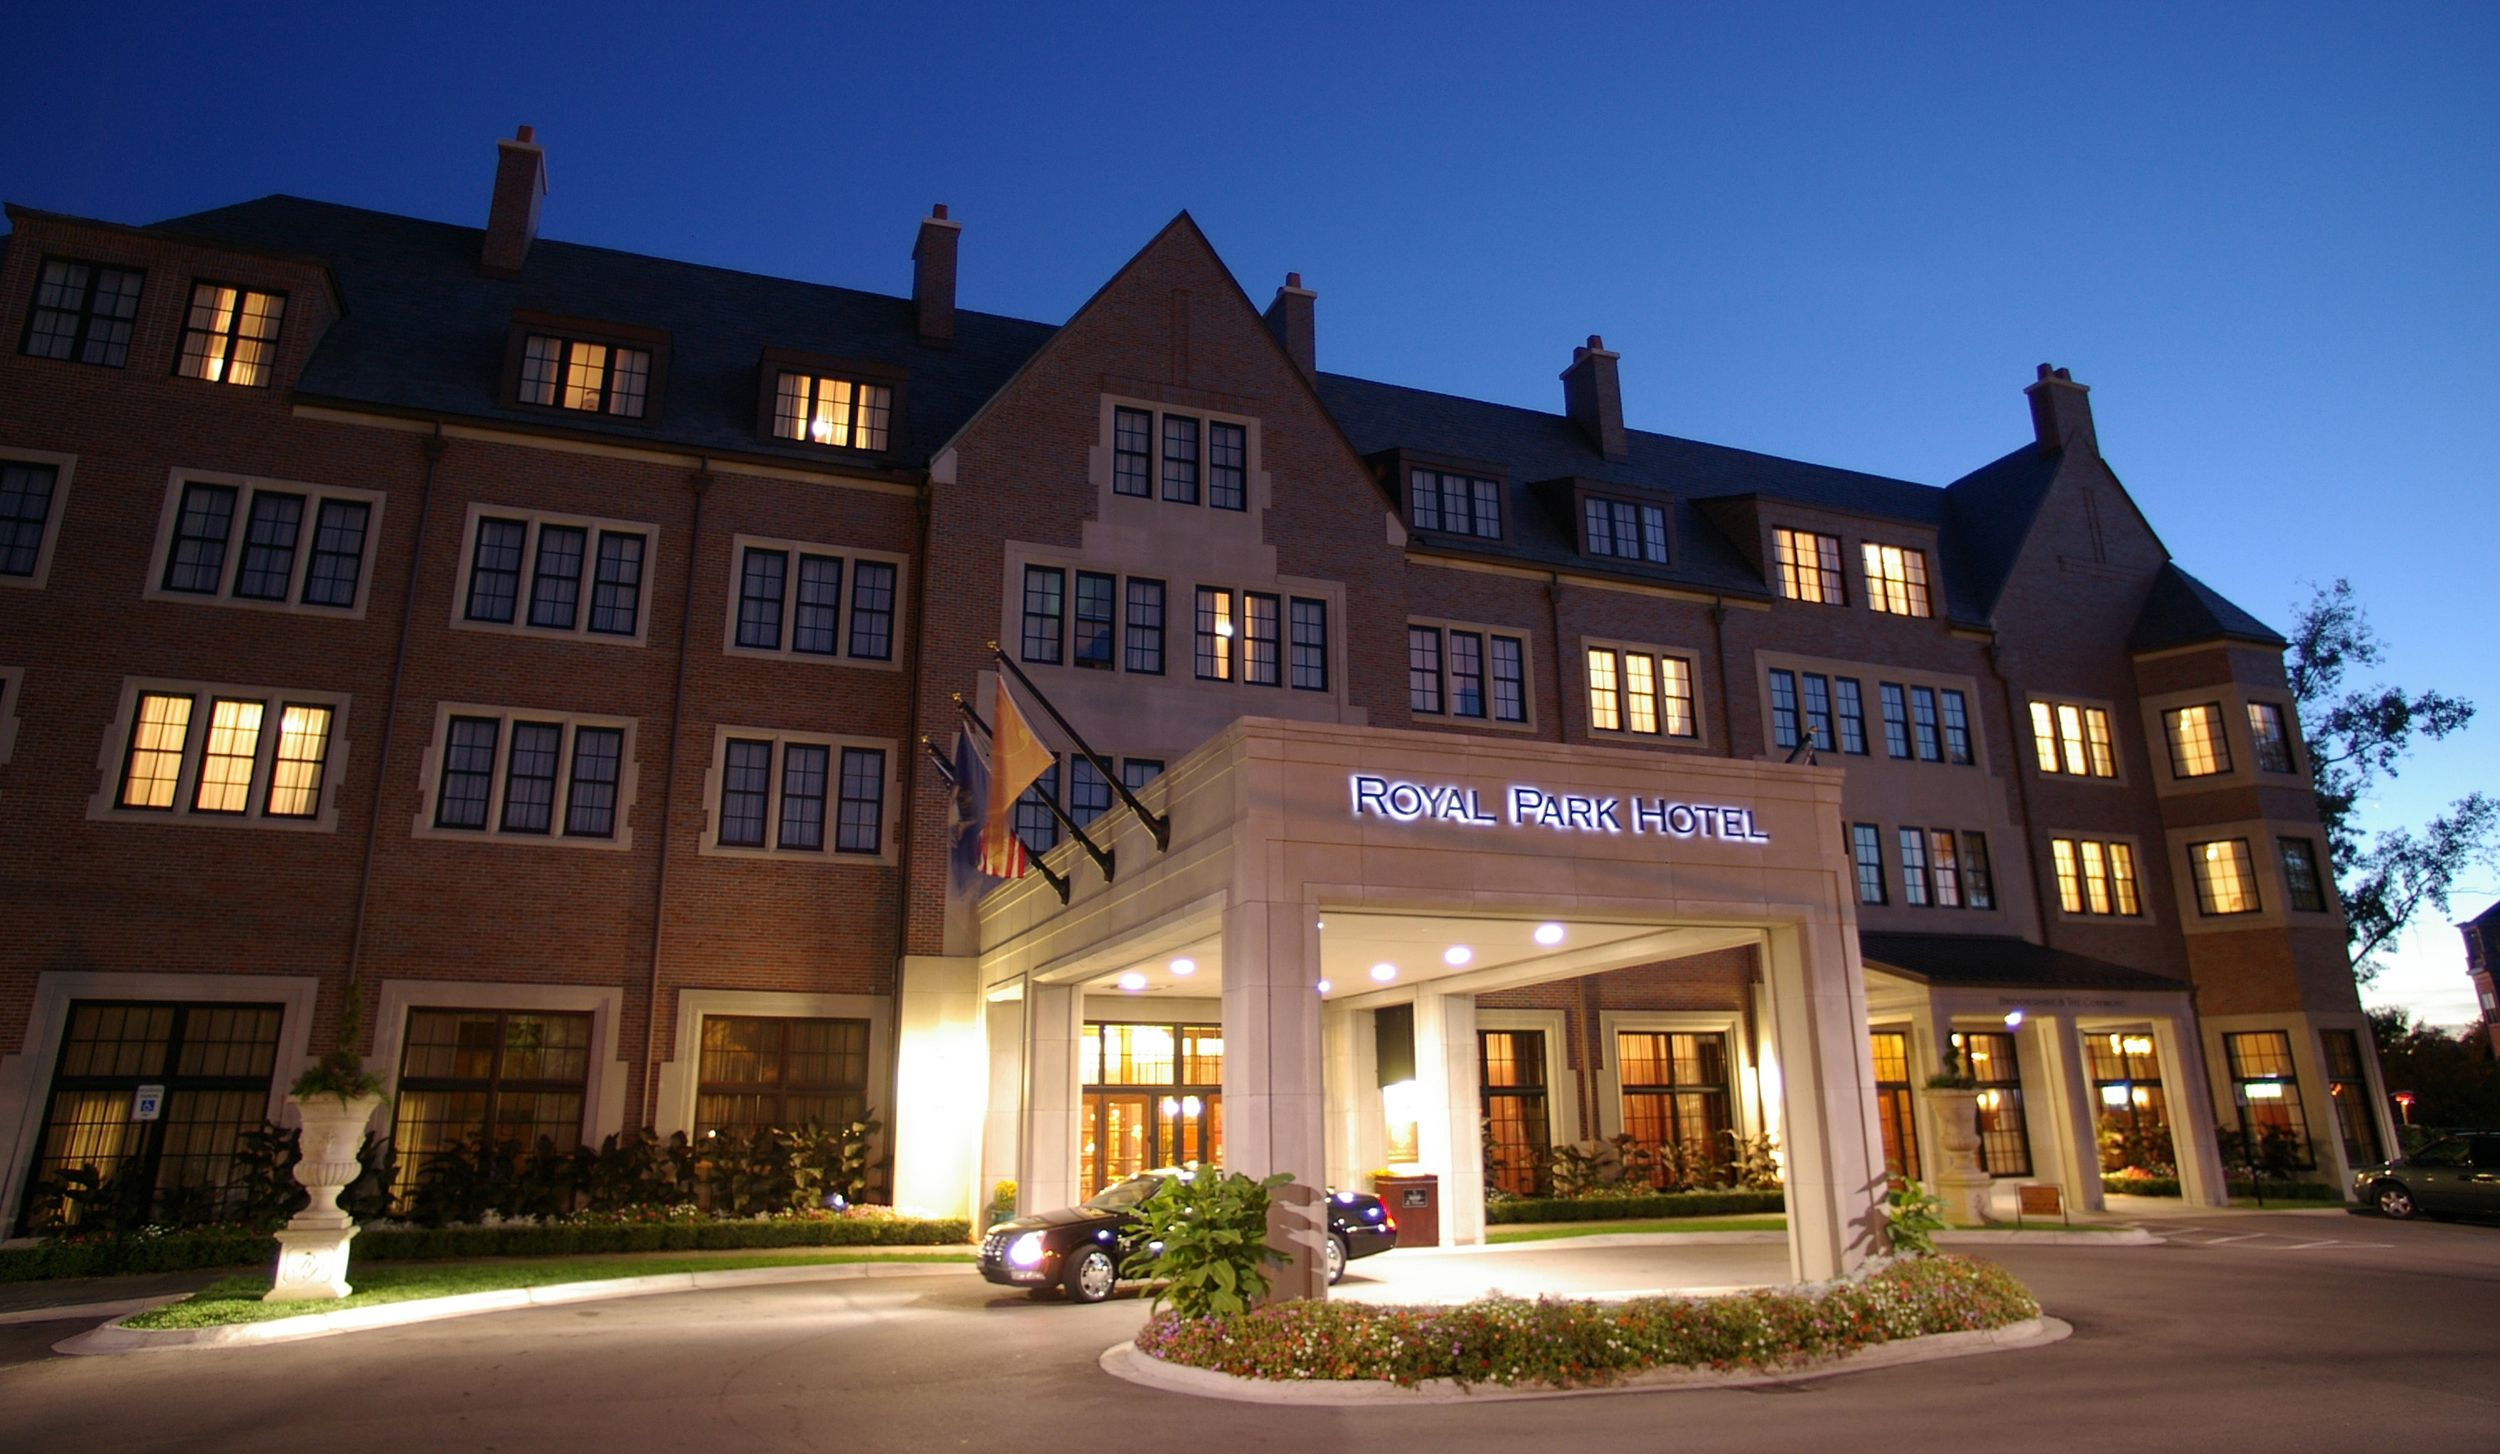 Royal Park Hotel In Rochester Michigan Baby Shower Venue Ideas